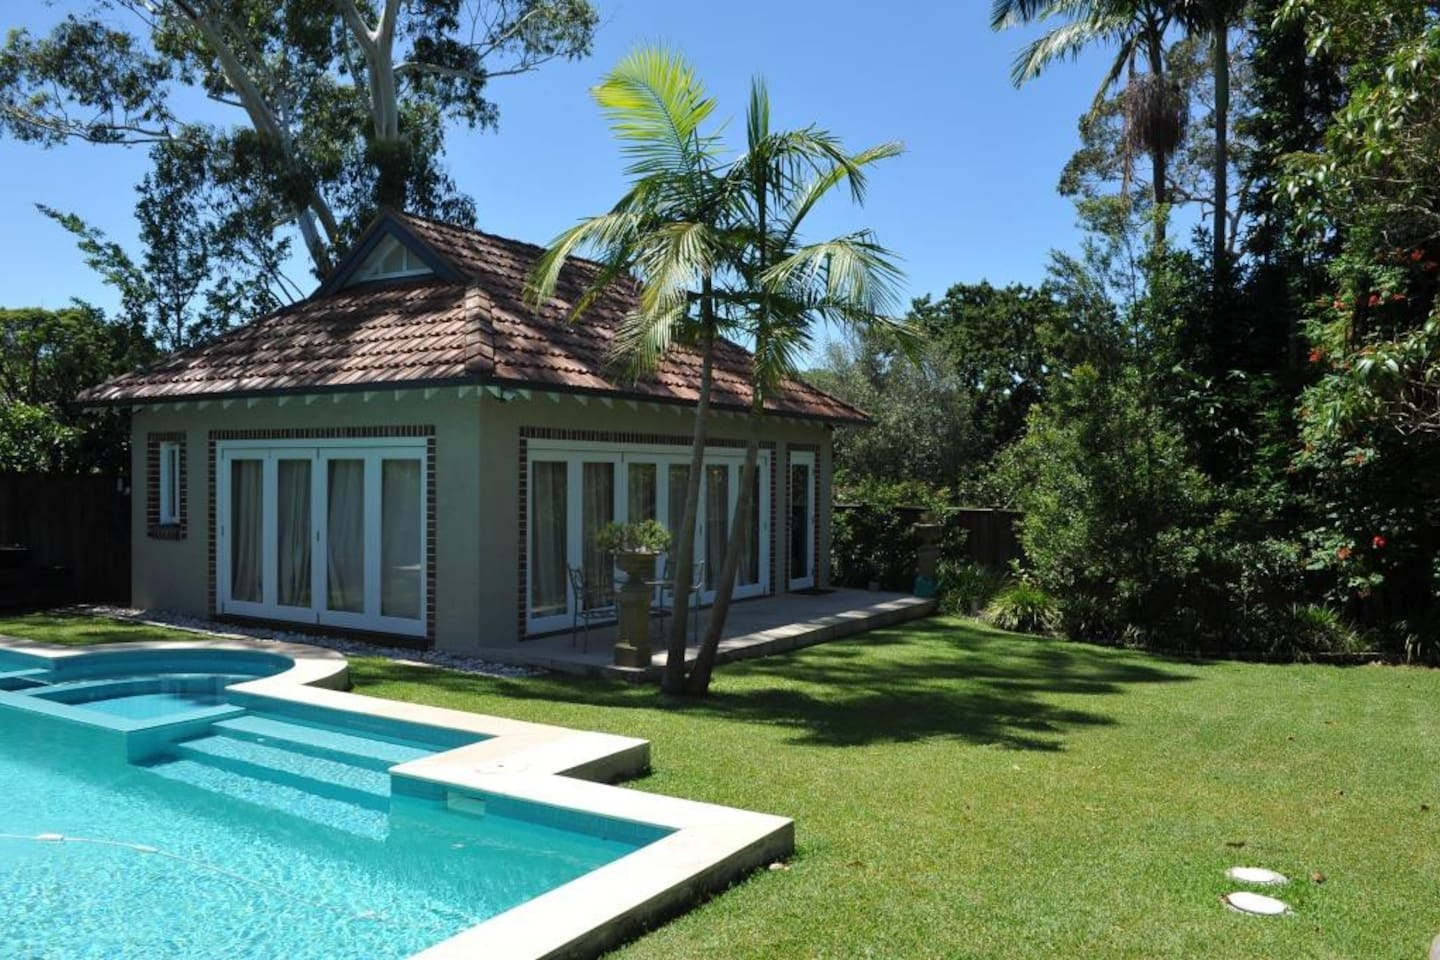 Cottage, pool and garden area.